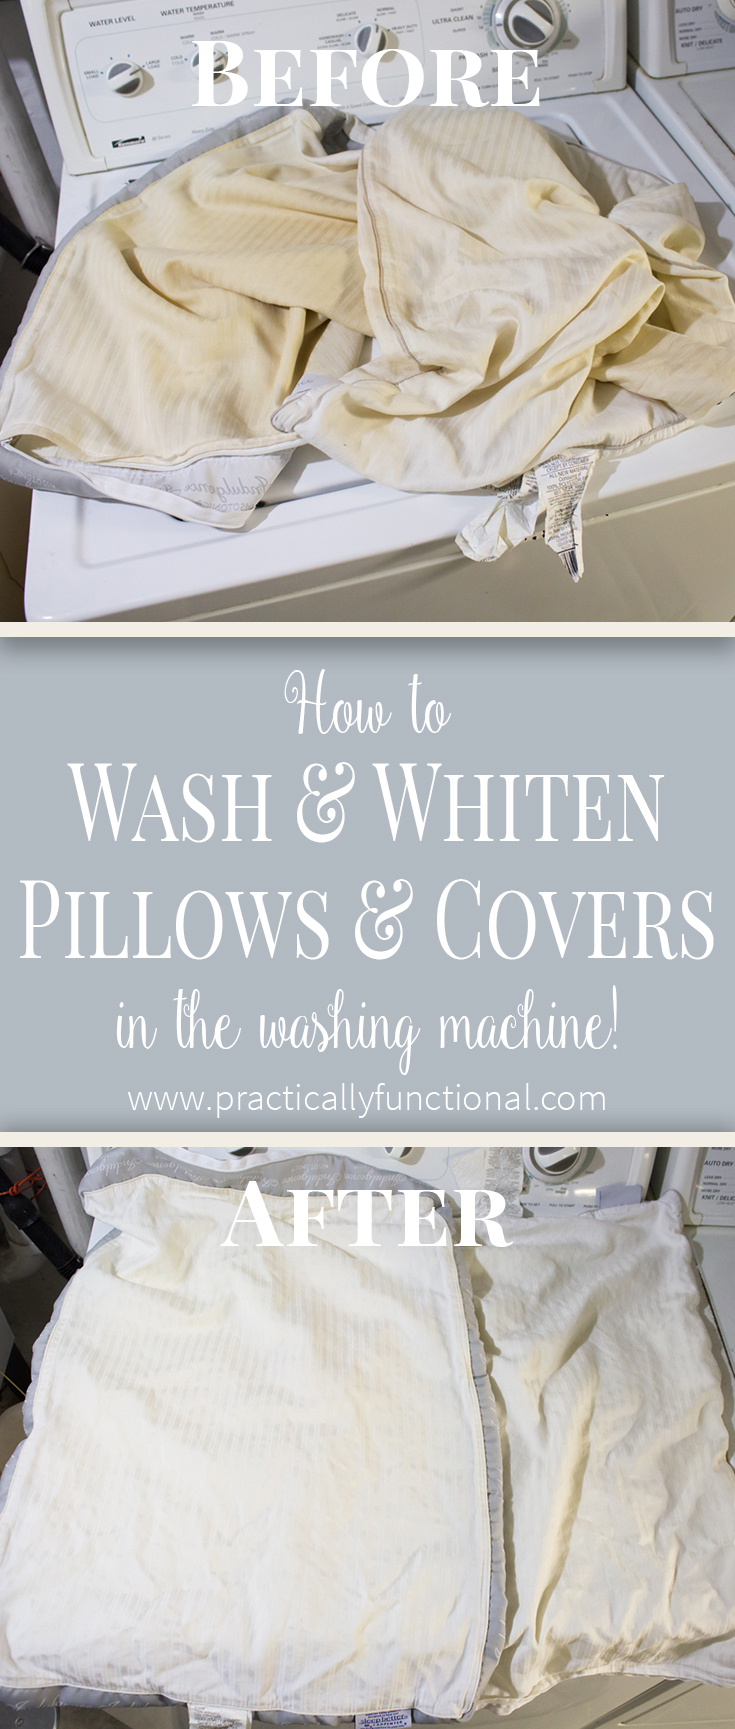 Did you know you can whiten pillow covers in your washing machine?! This tutorial shows you how, and they come out bright white, like new!